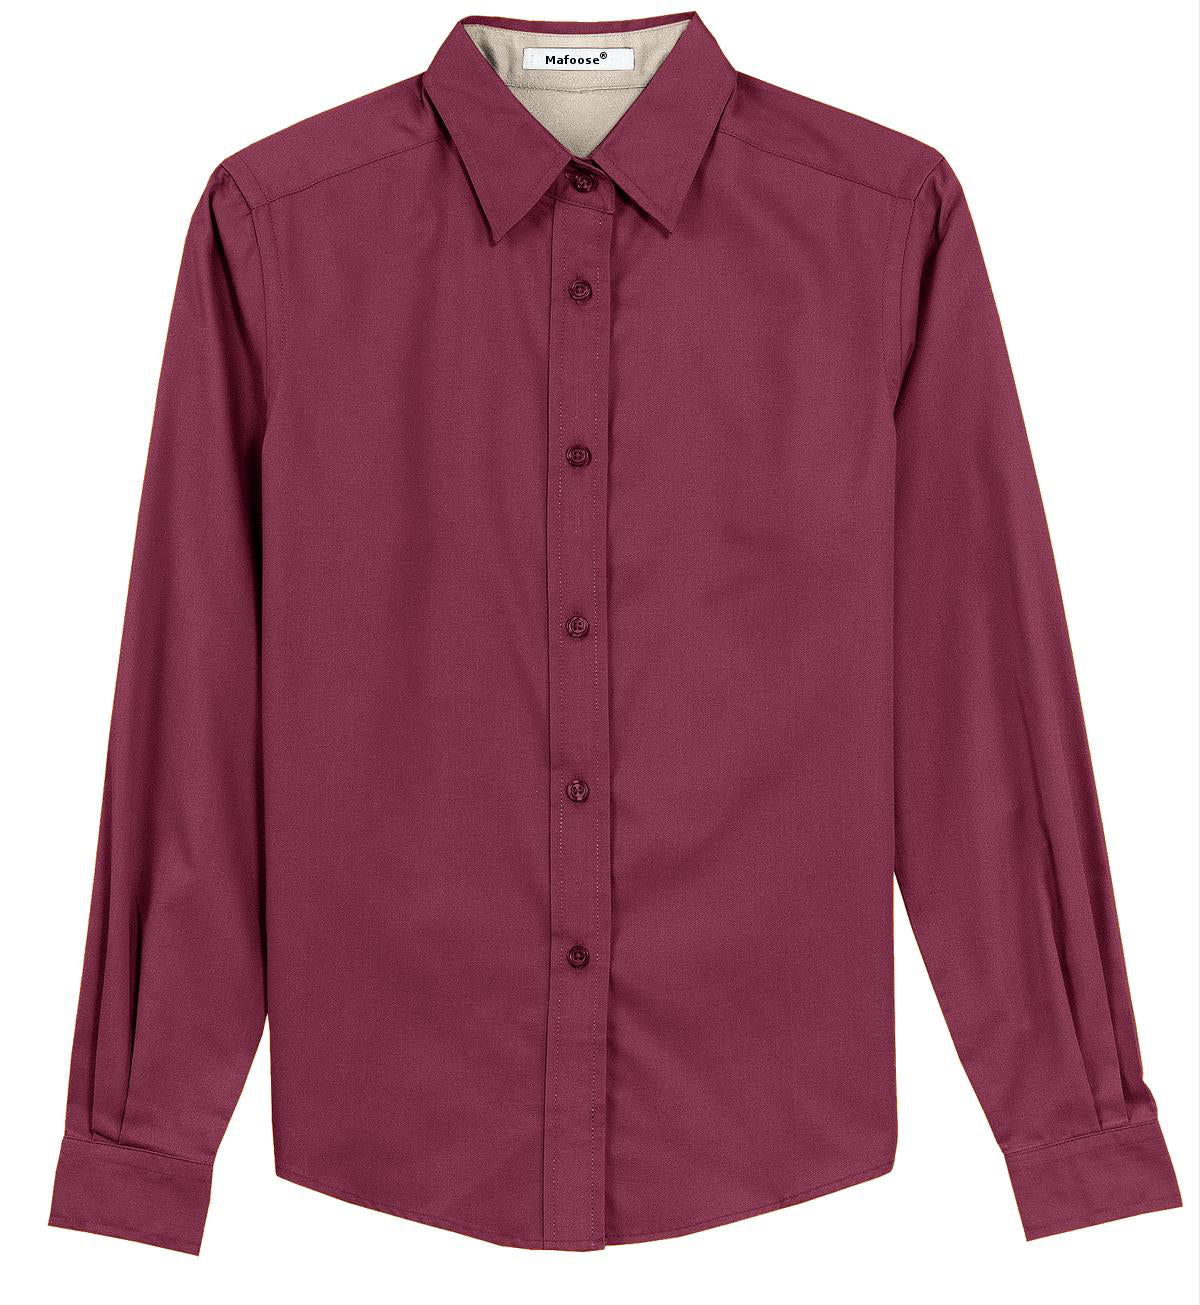 Mafoose Women's Long Sleeve Easy Care Shirt Burgundy/Light Stone-Front